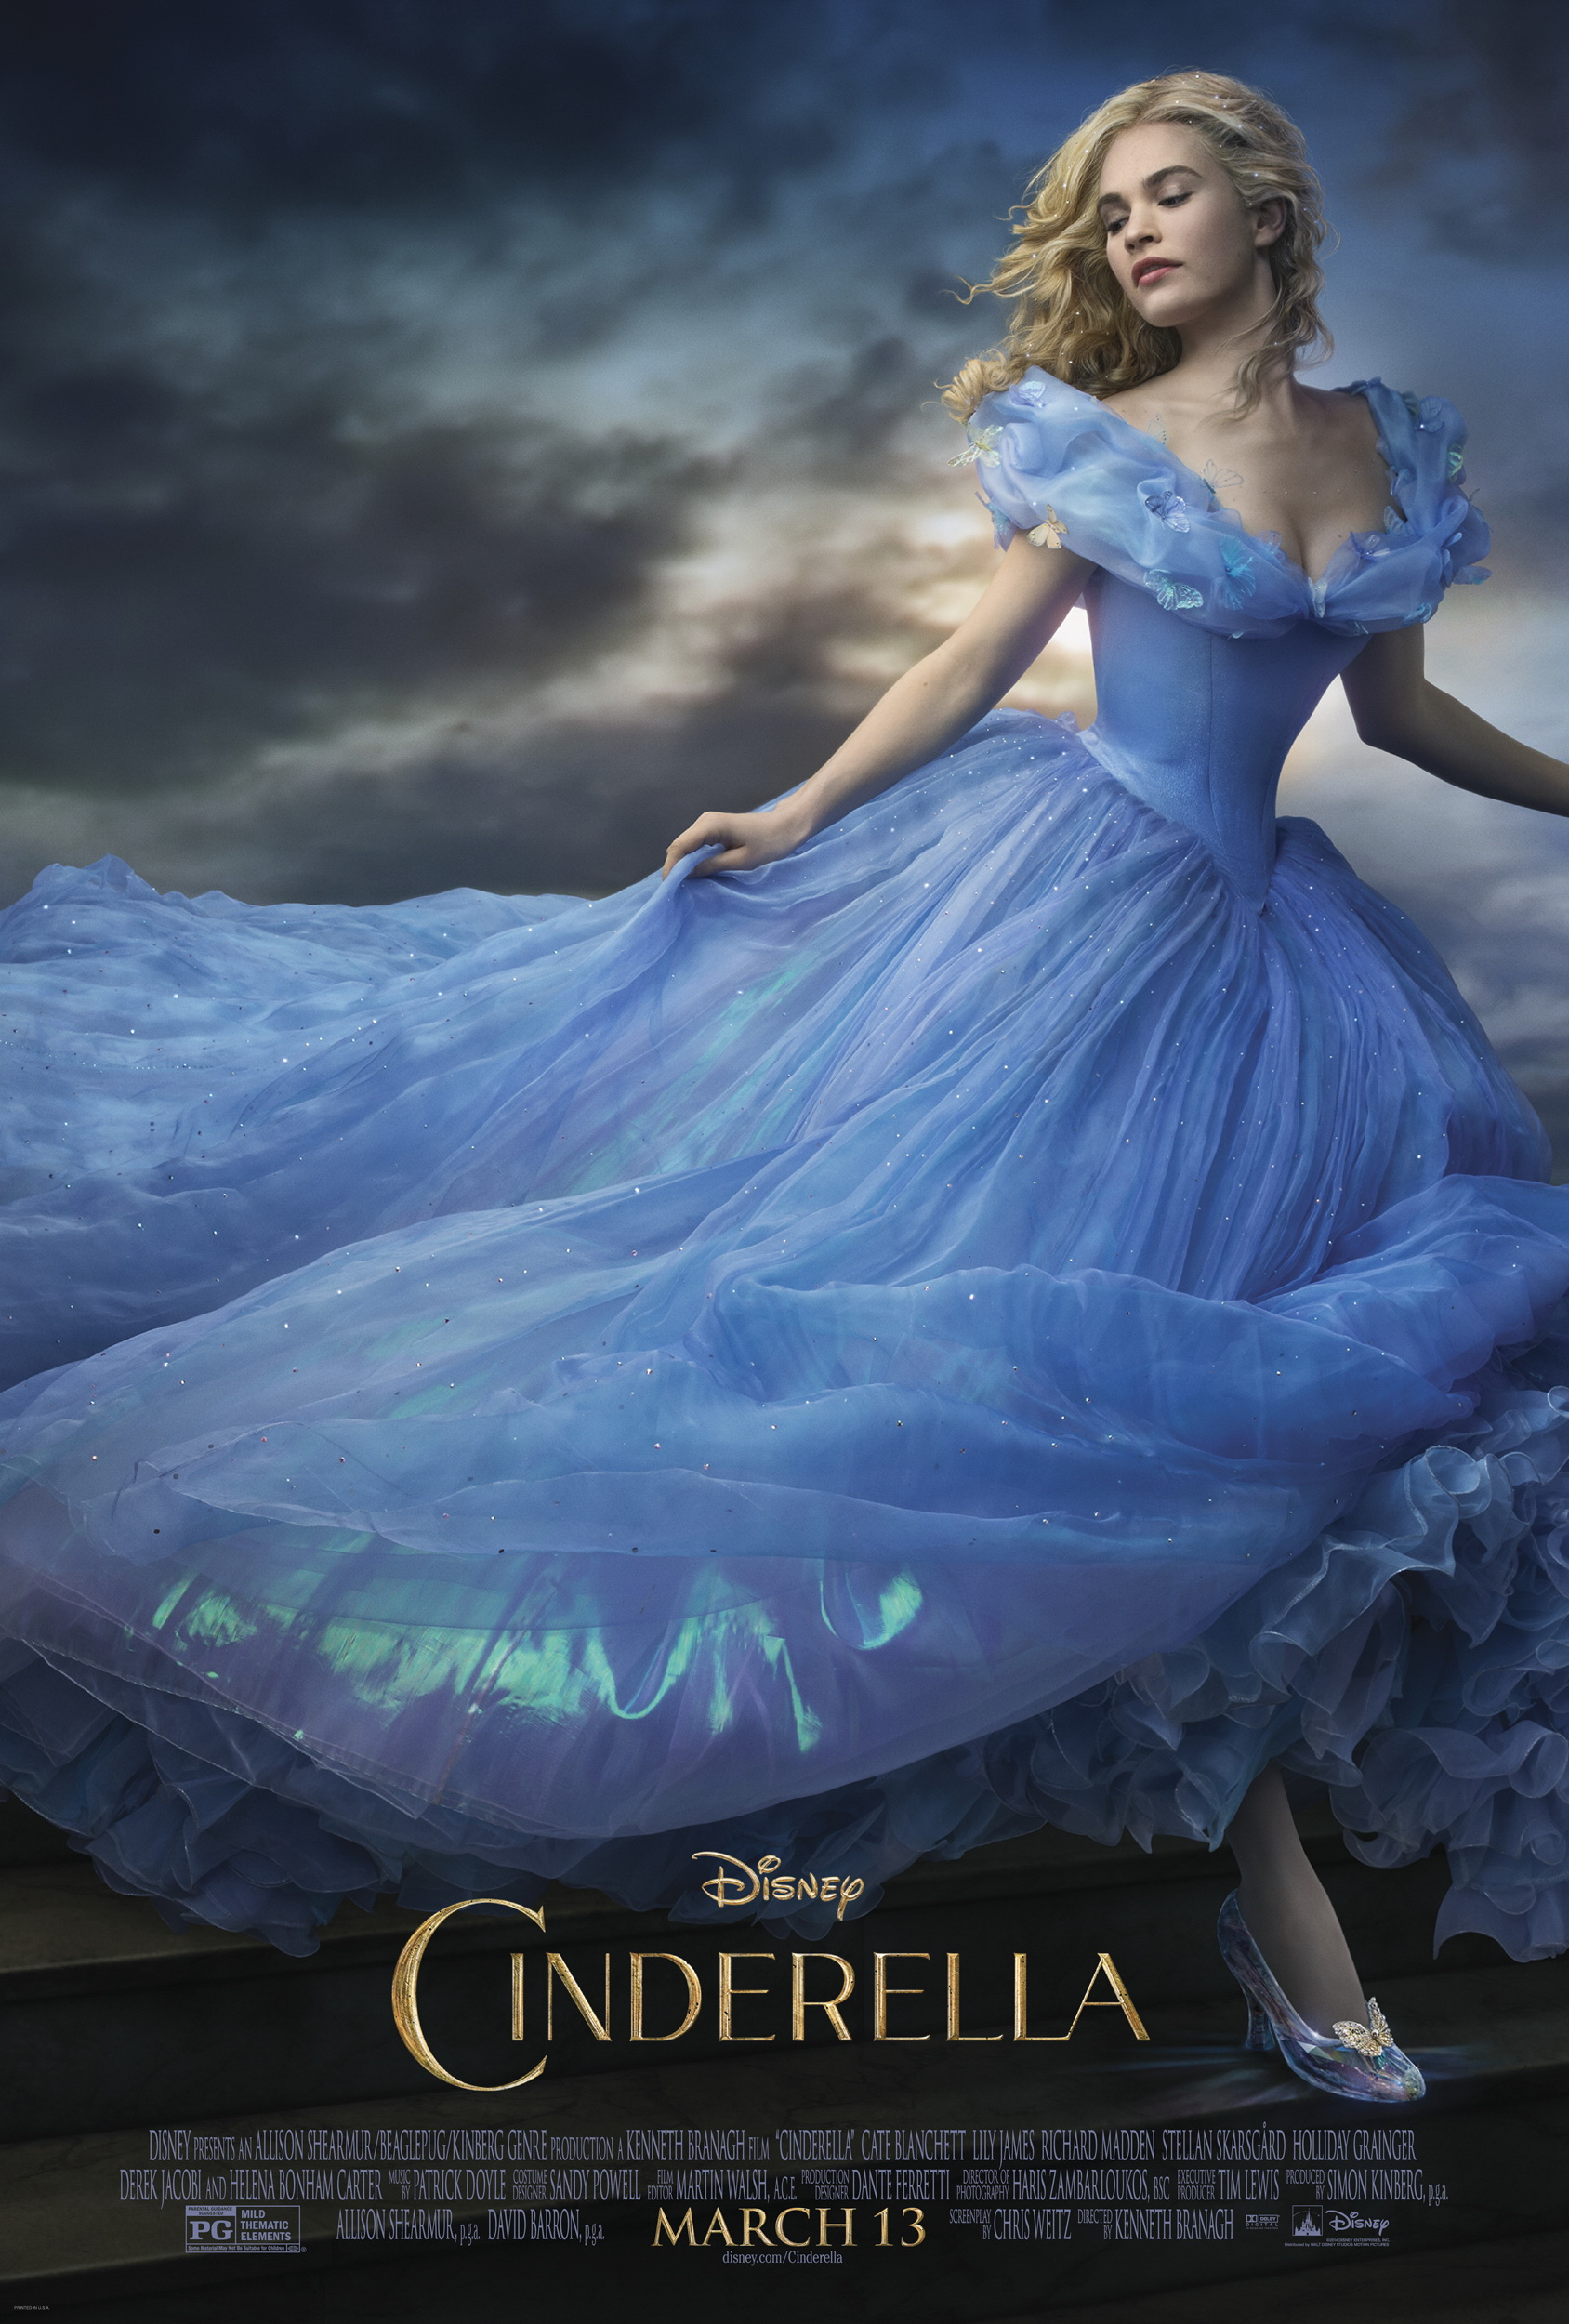 Cinderella 2015 Film Disney Wiki Fandom Powered By Wikia